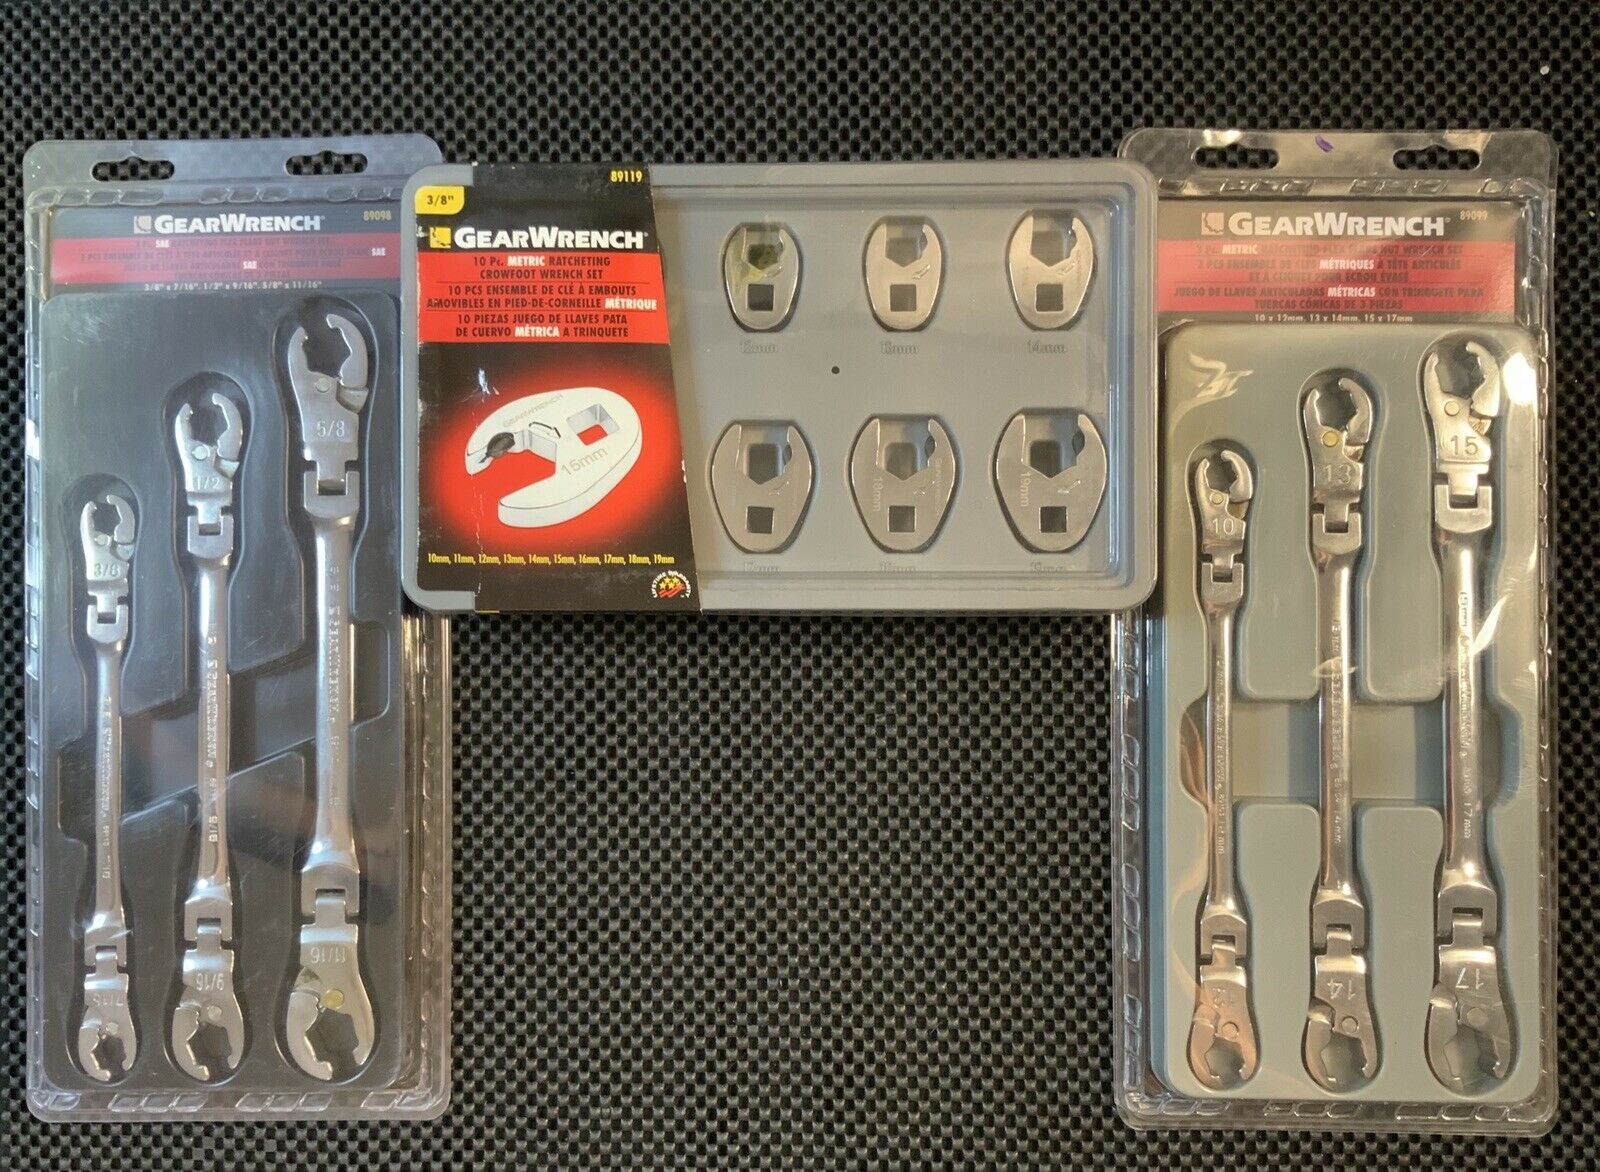 GearWrench Crowfoot Wrench Set + Flex Flare Ratcheting Wrench Set. Buy it now for 171.96